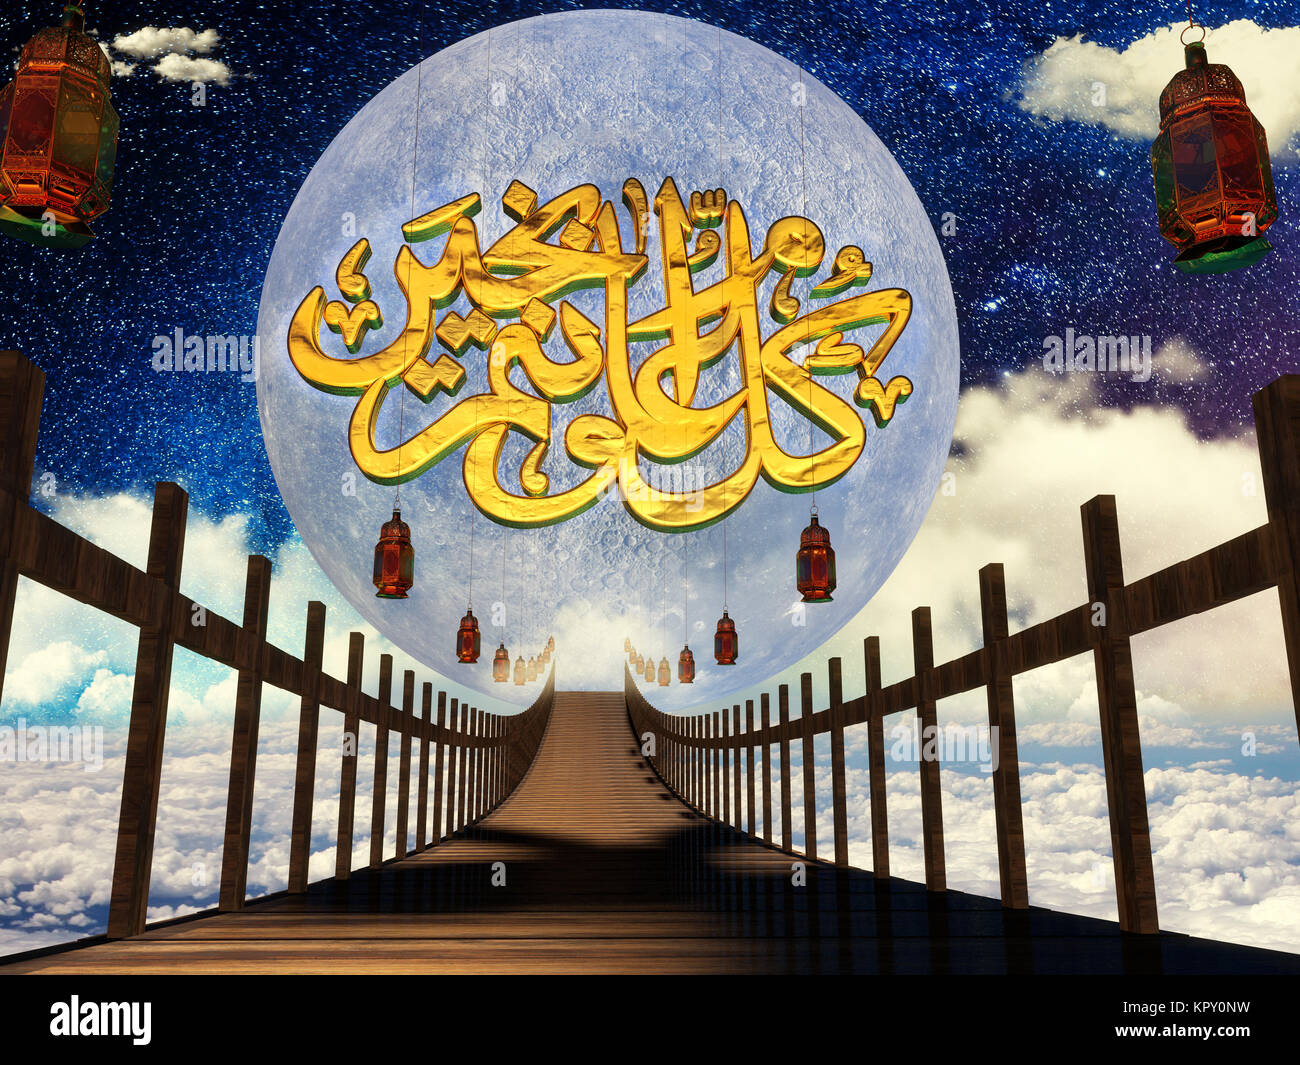 3d scene for islamic events - Stock Image